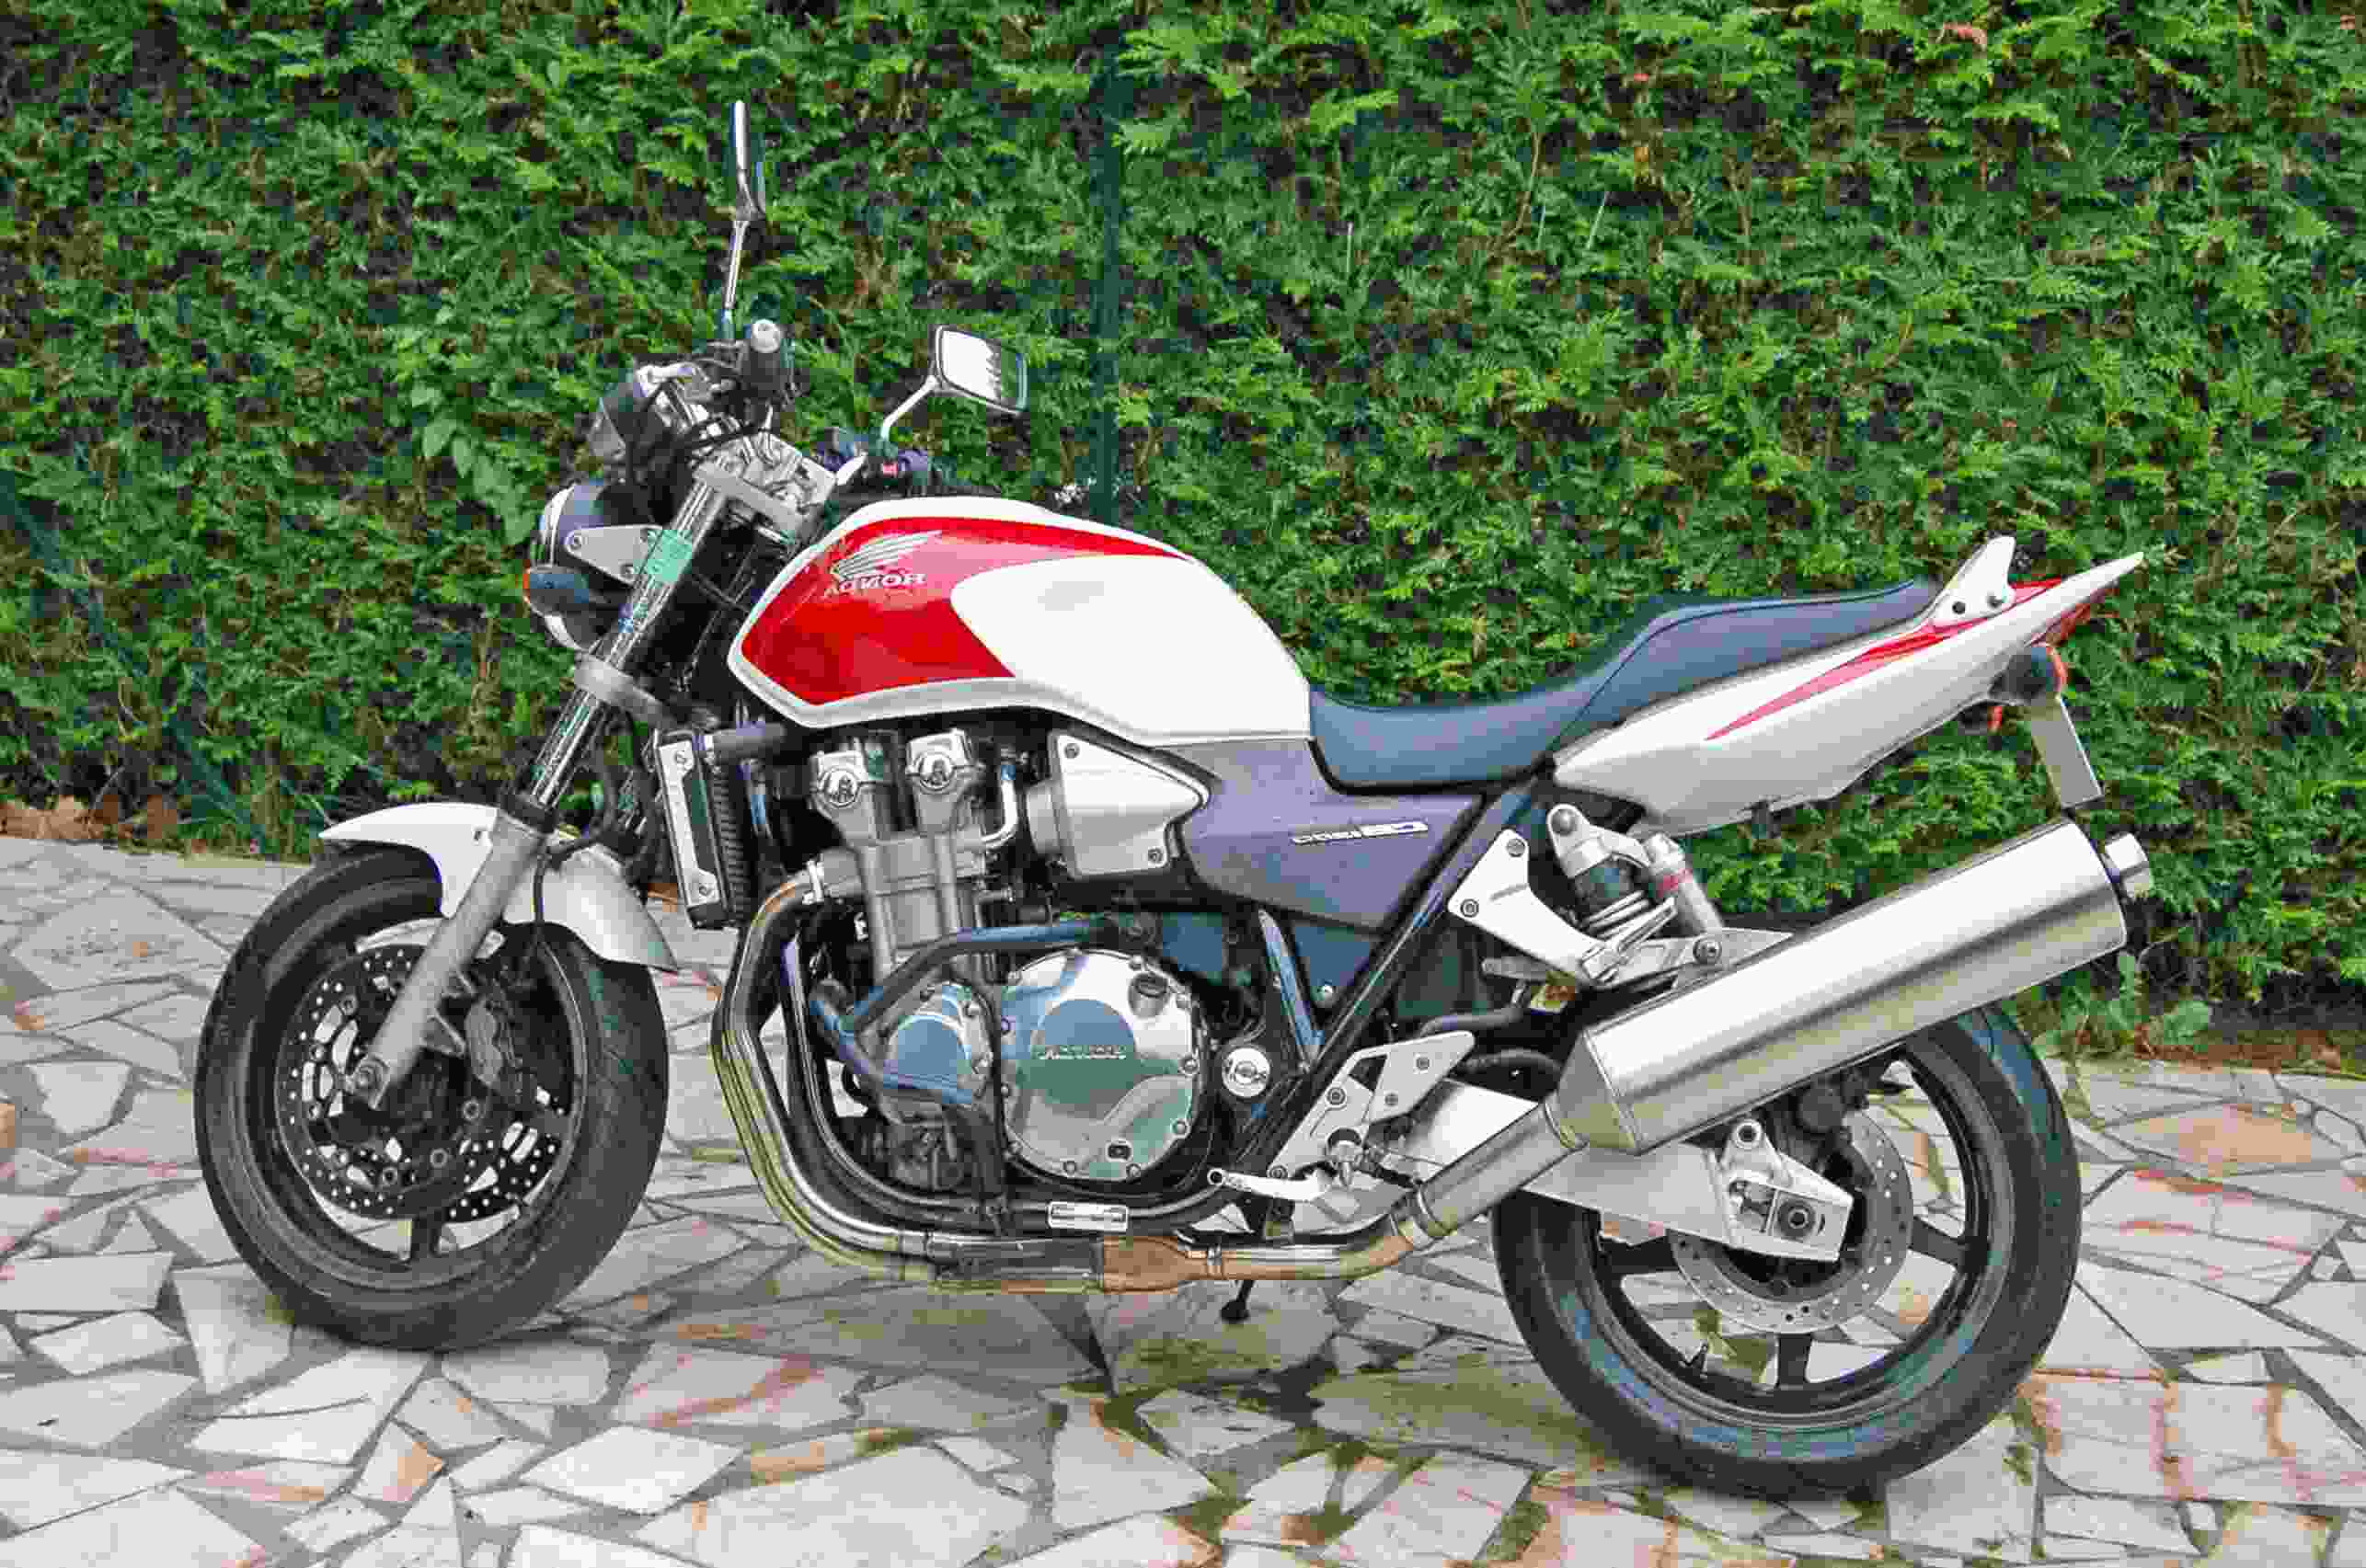 Cb1300 For Sale In Uk 34 Second Hand Cb1300